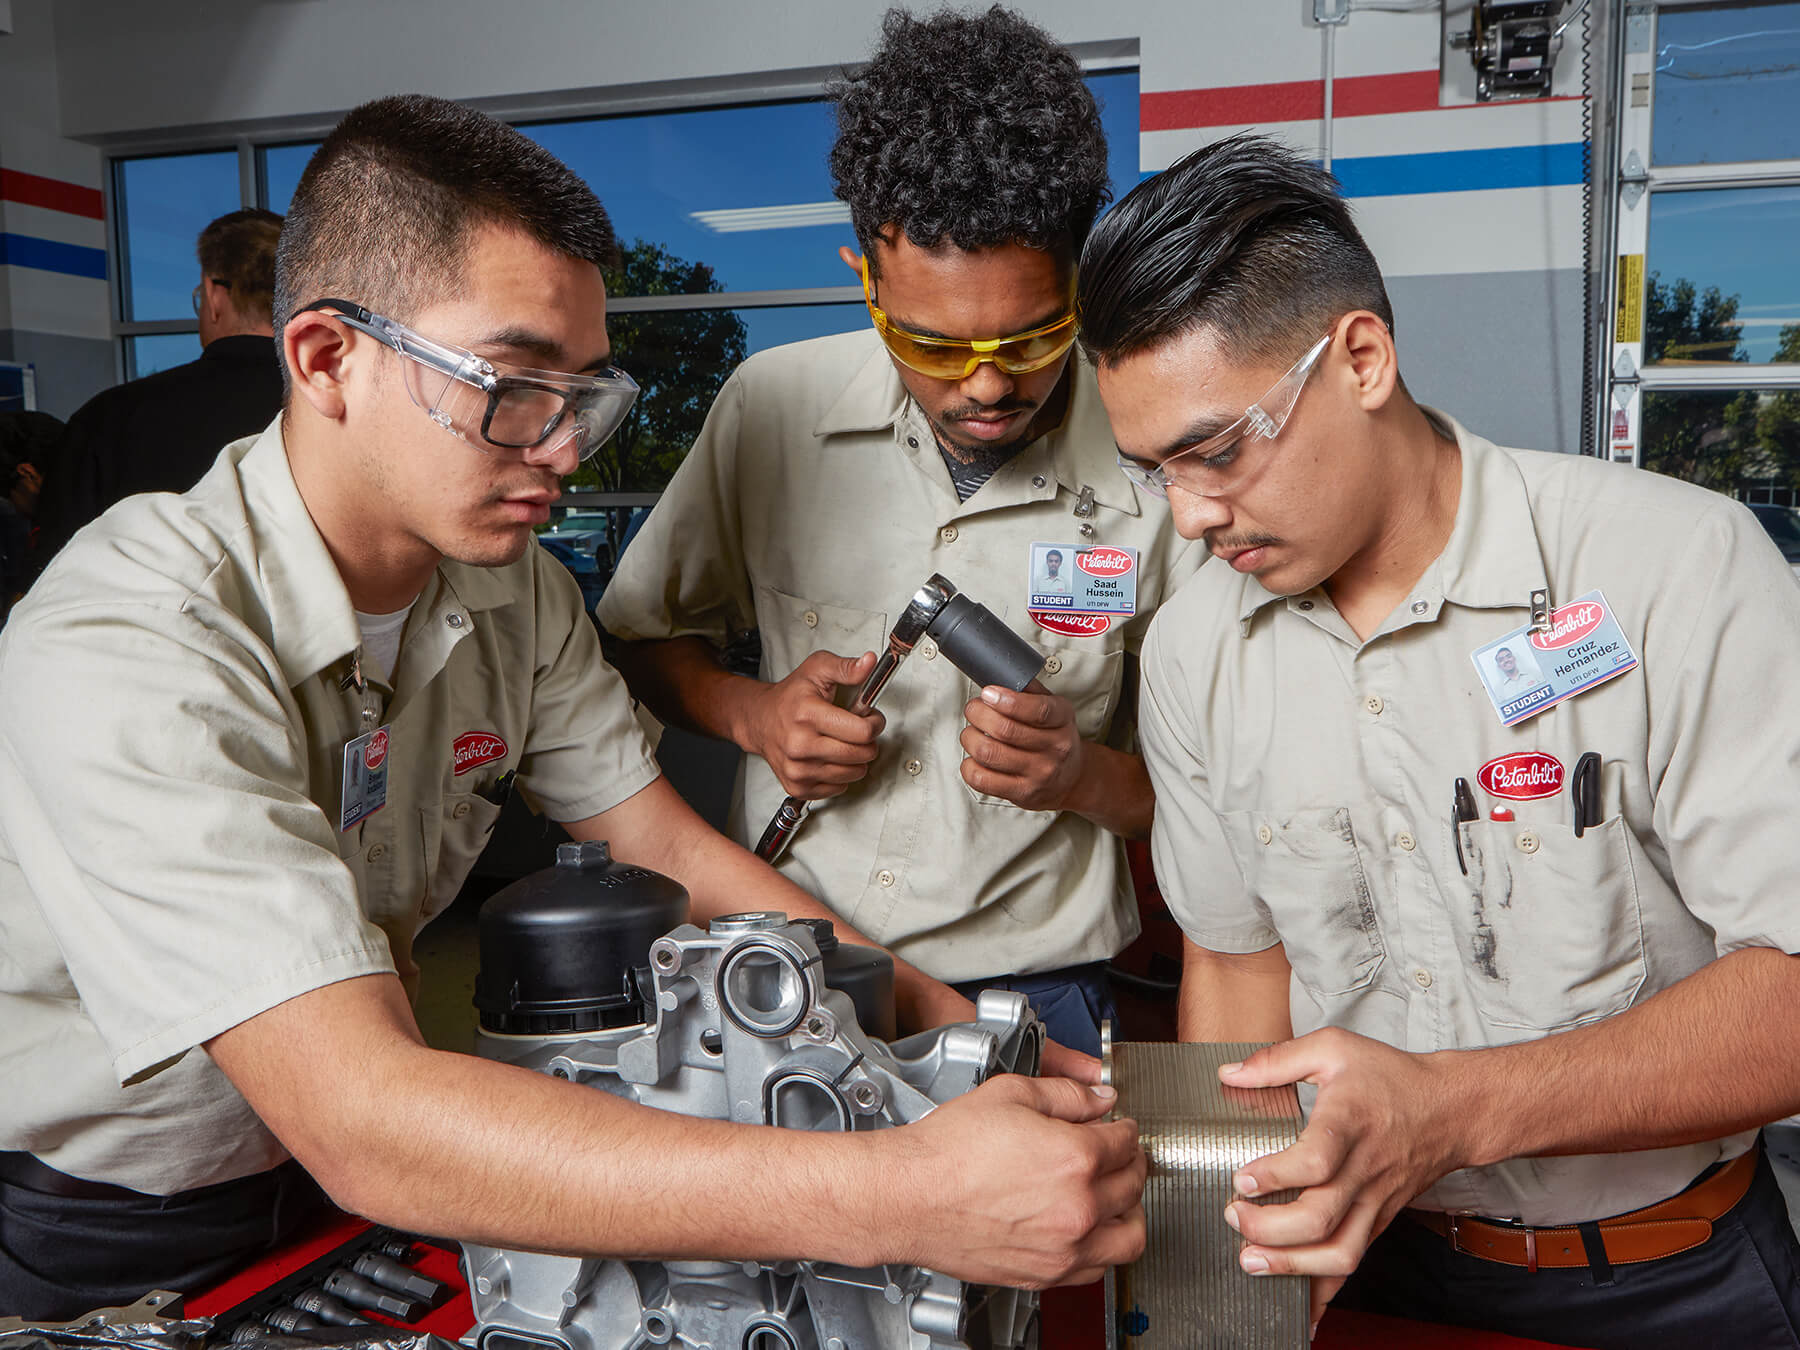 UTI students working on an engine in the peterbilt diesel lab